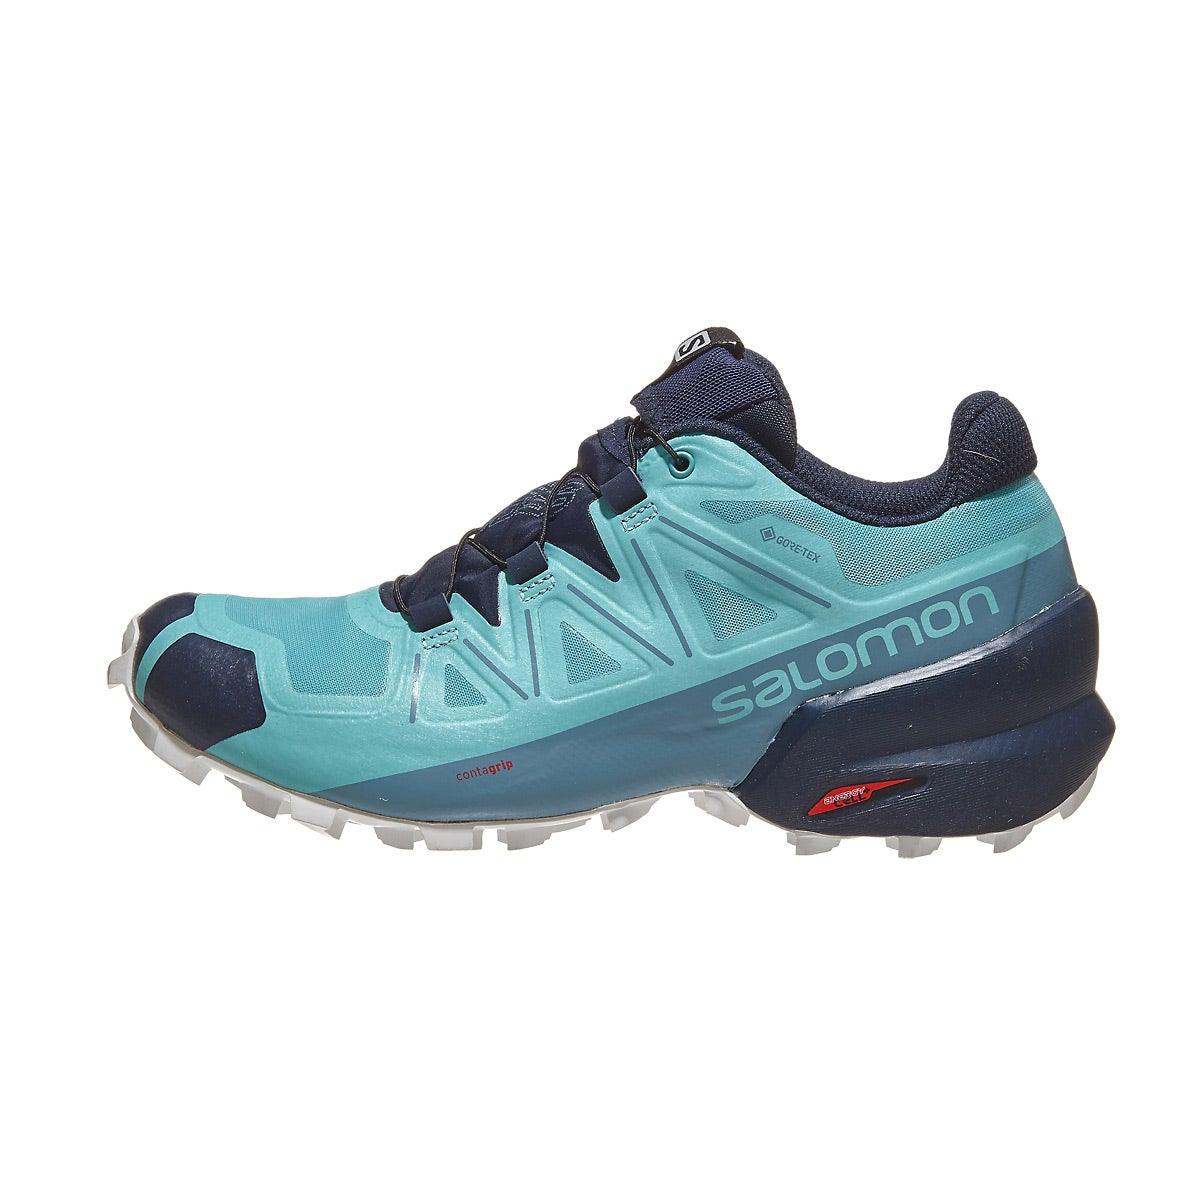 Salomon Speedcross 5 GTX Women's Shoes Meadowbrook 360° View ...